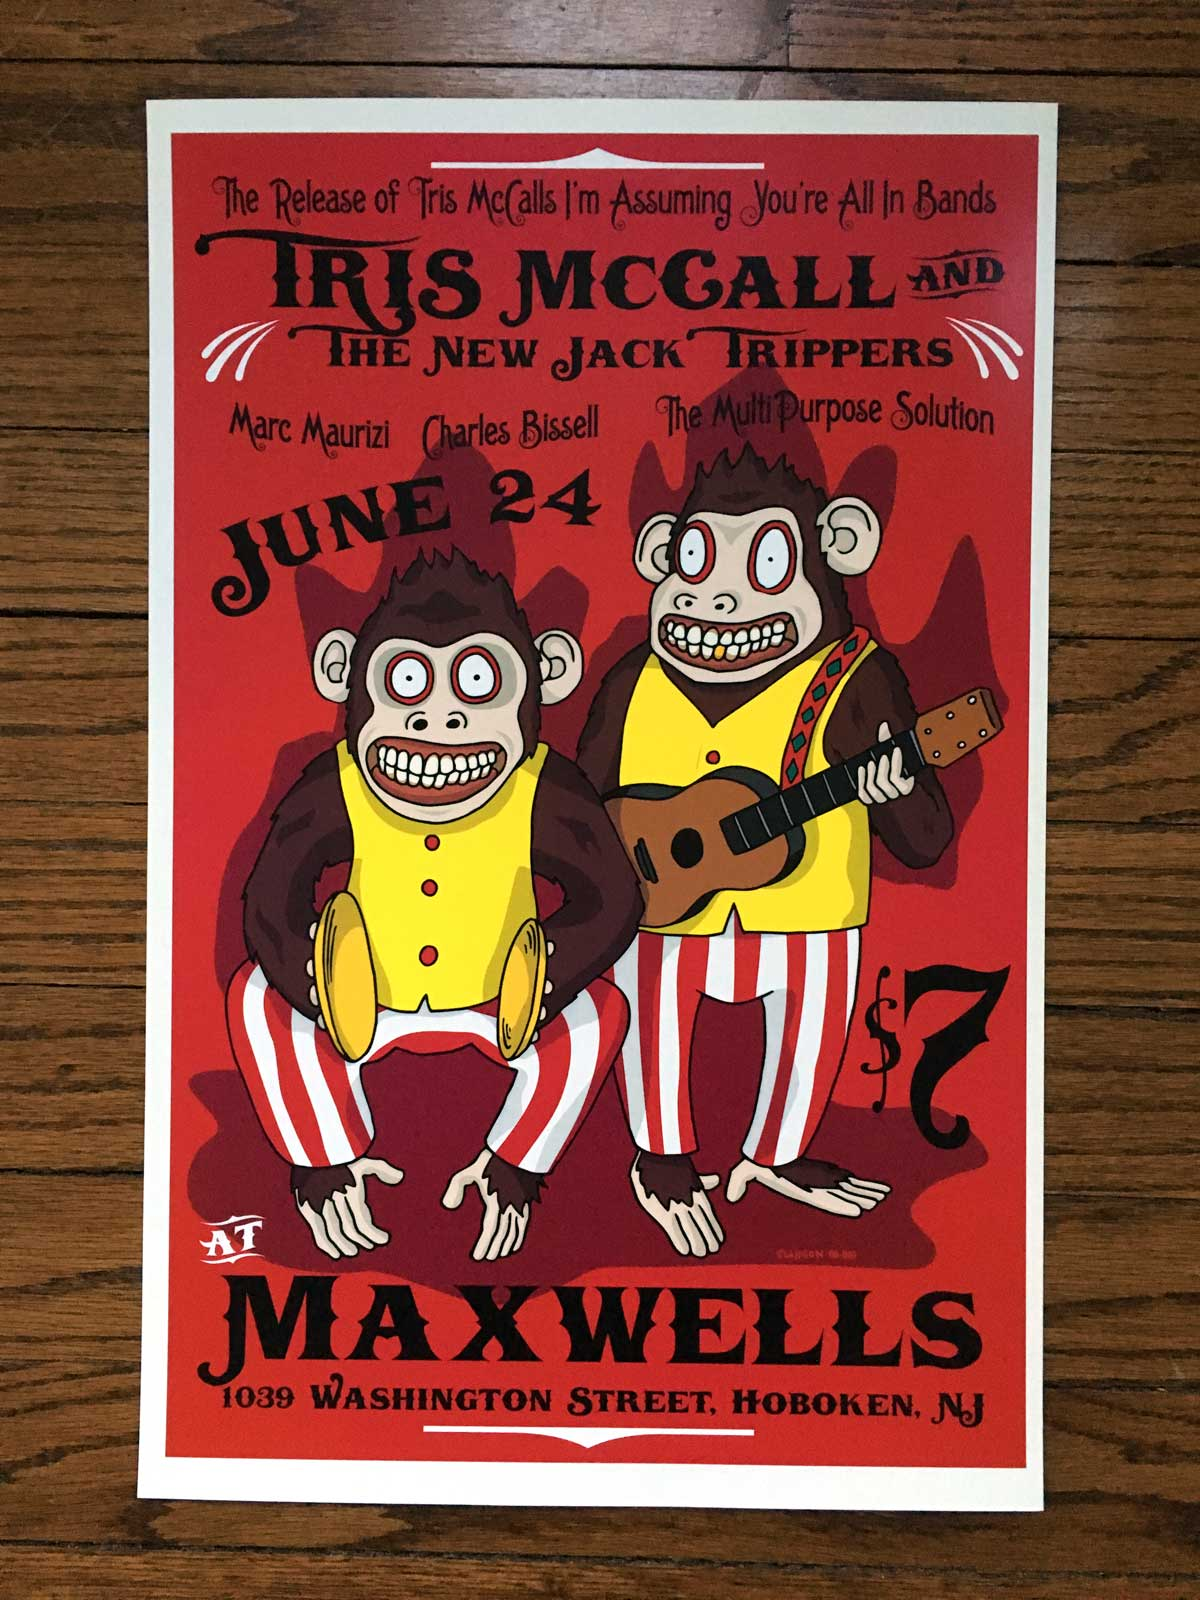 Tris McCall and the New Jack Trippers @ Maxwell's